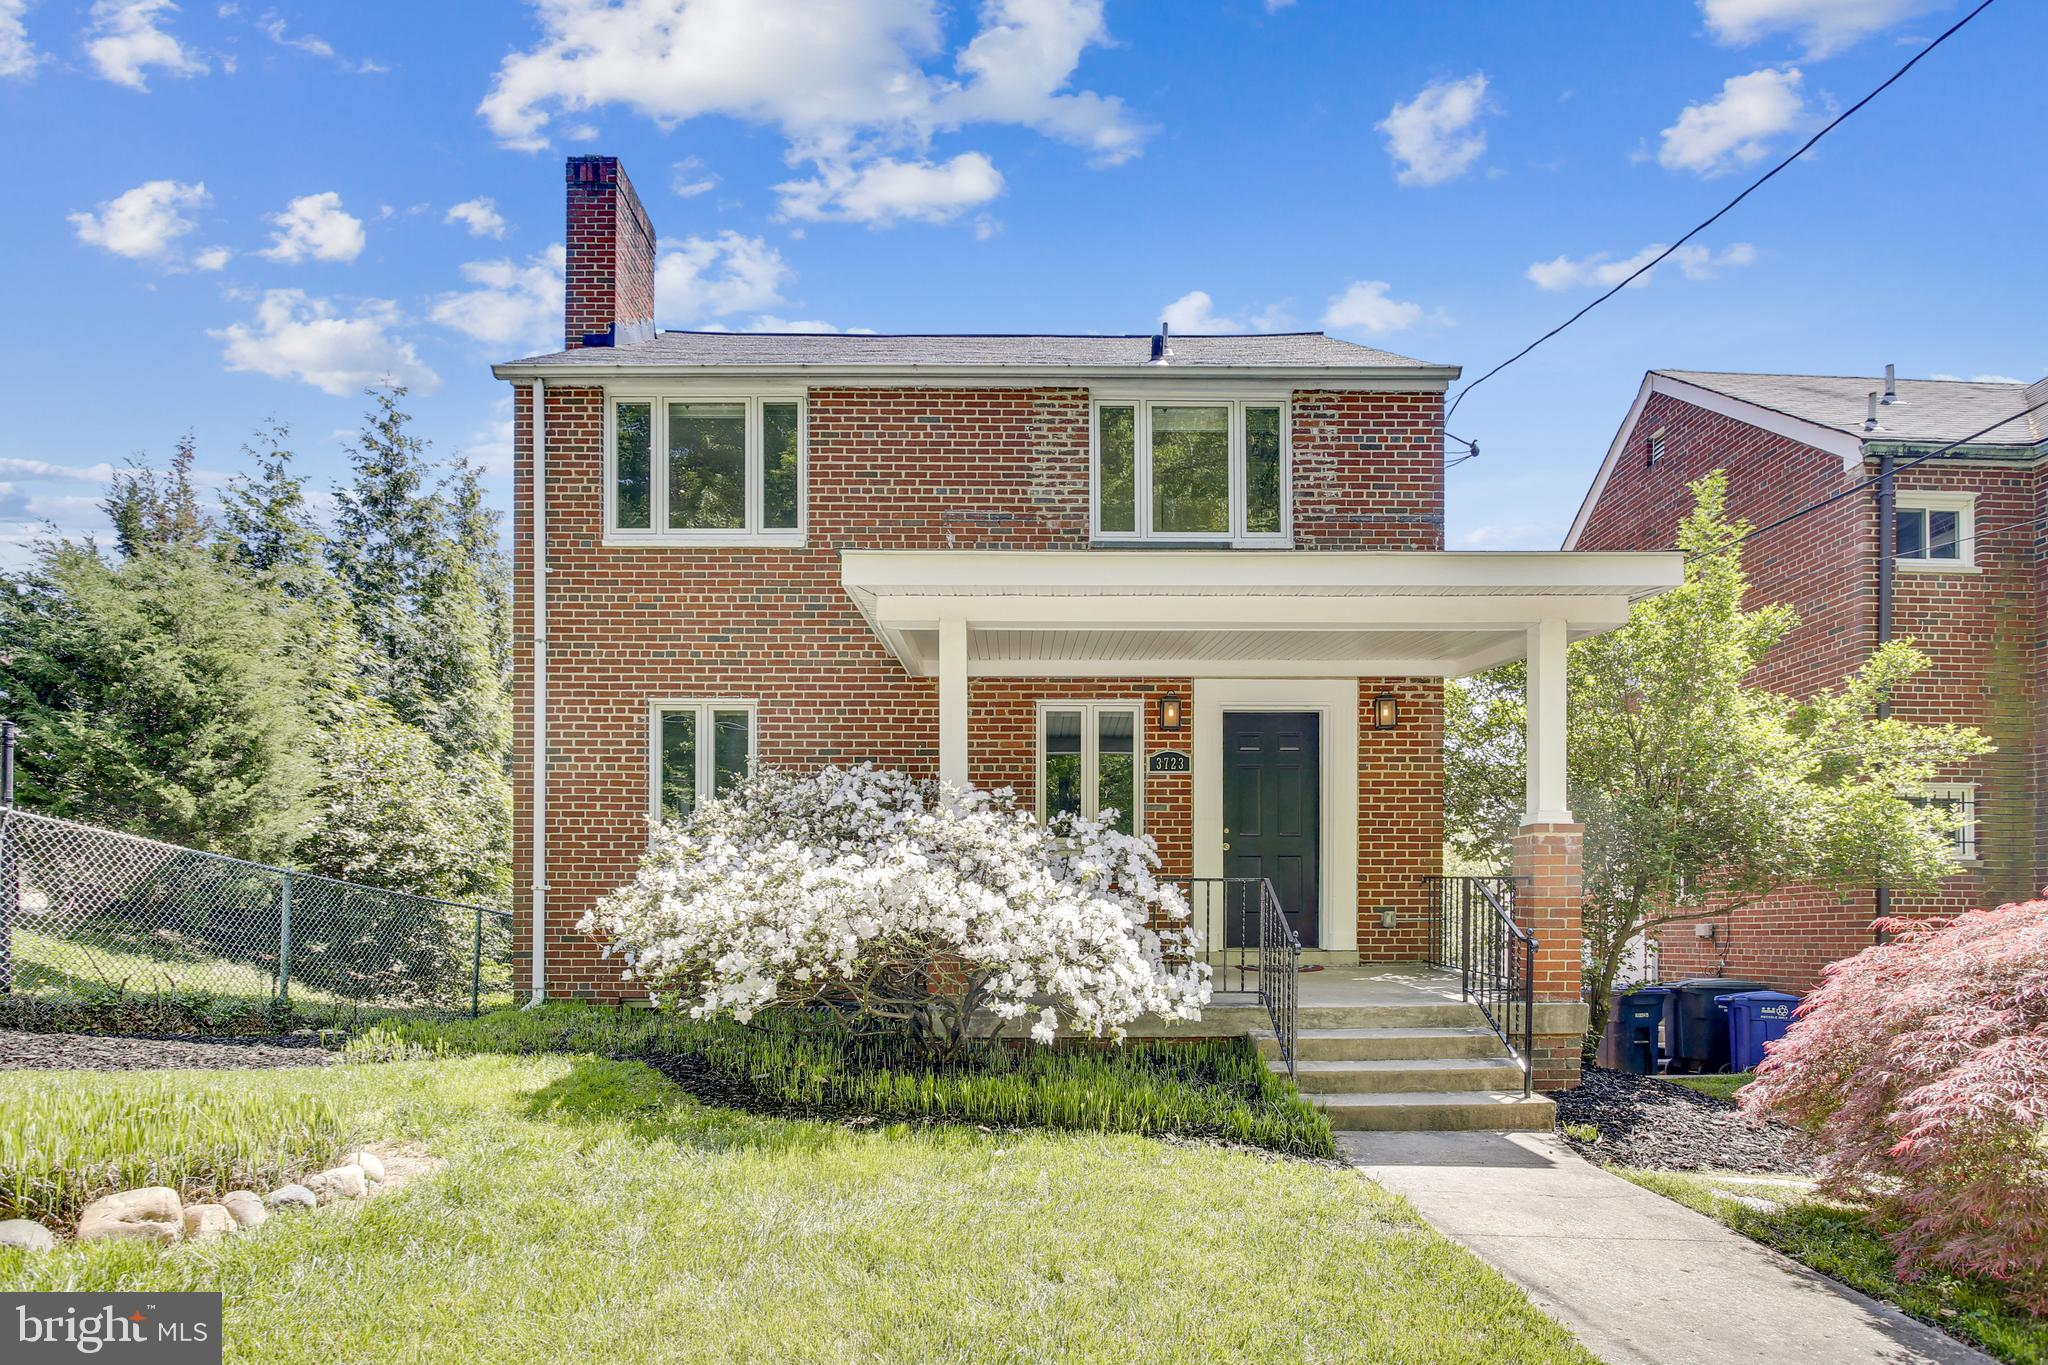 Discover peaceful living with this 3bd/2br brick gem in Brookland! Hardwood floors and large windows means PLENTY of natural light. Features include living room with brick fireplace, large eat-in kitchen, Central AC,  finished basement, 2-car garage, and sweeping backyard. Master bedroom comes with en-suite bathroom with dual sinks. Yard is Huge - Includes 2 lots to total  10,230 sq/ft with plans for large addition.  Walk to Franciscan Monastery Gardens, Monroe Street Market, 12th Street bars and restaurants, and the Brookland-CUA Metro station. <b>OPEN HOUSE SUN 1-4</b>